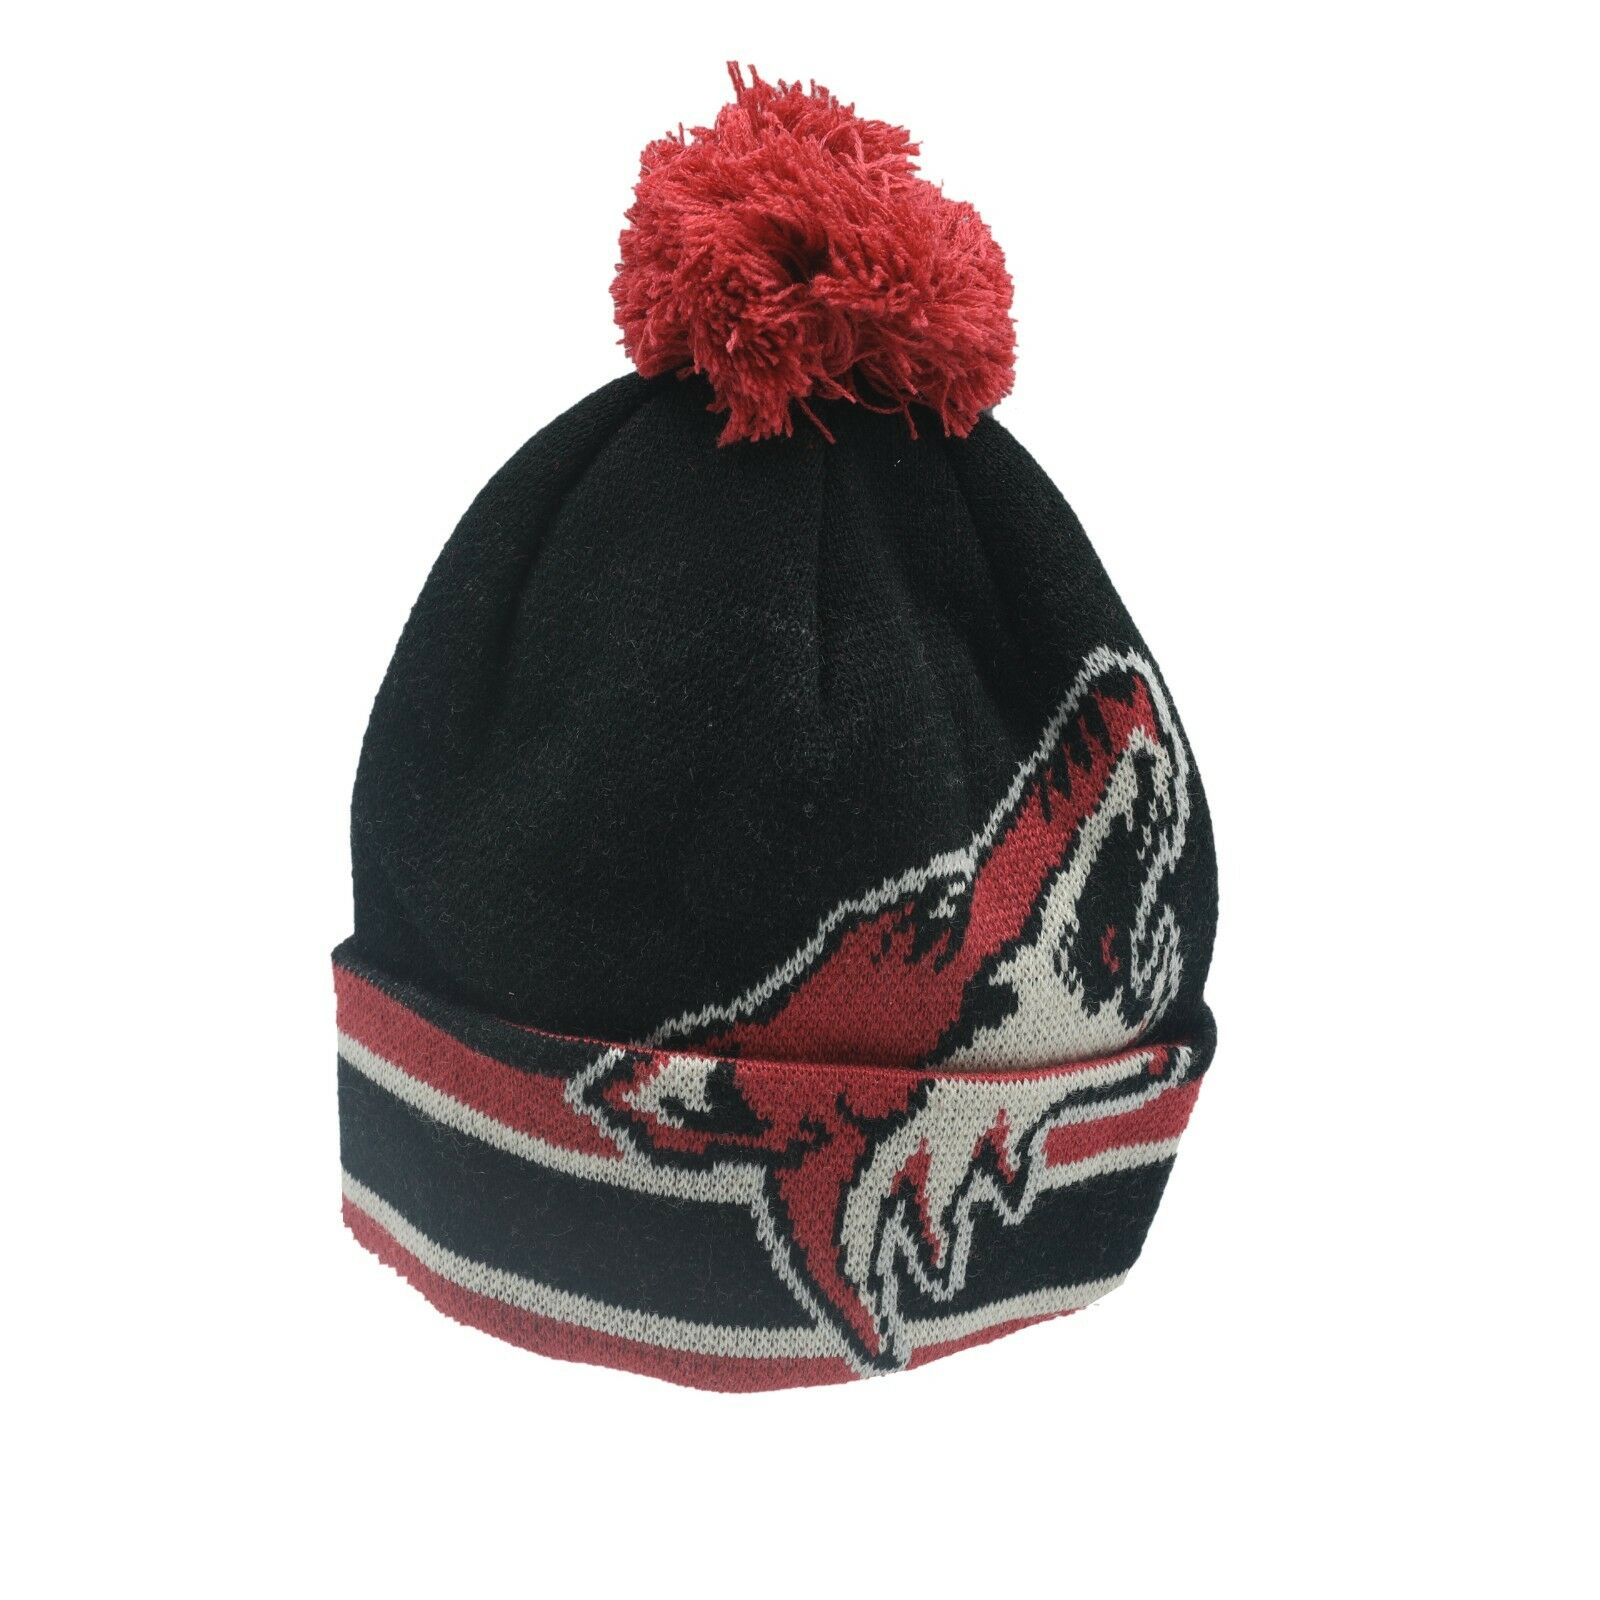 quality design 19a48 5ebcc Arizona Coyotes NHL CCM Youth Boys (8-20) Cuffed Pom Knit Winter Beanie New  Tags